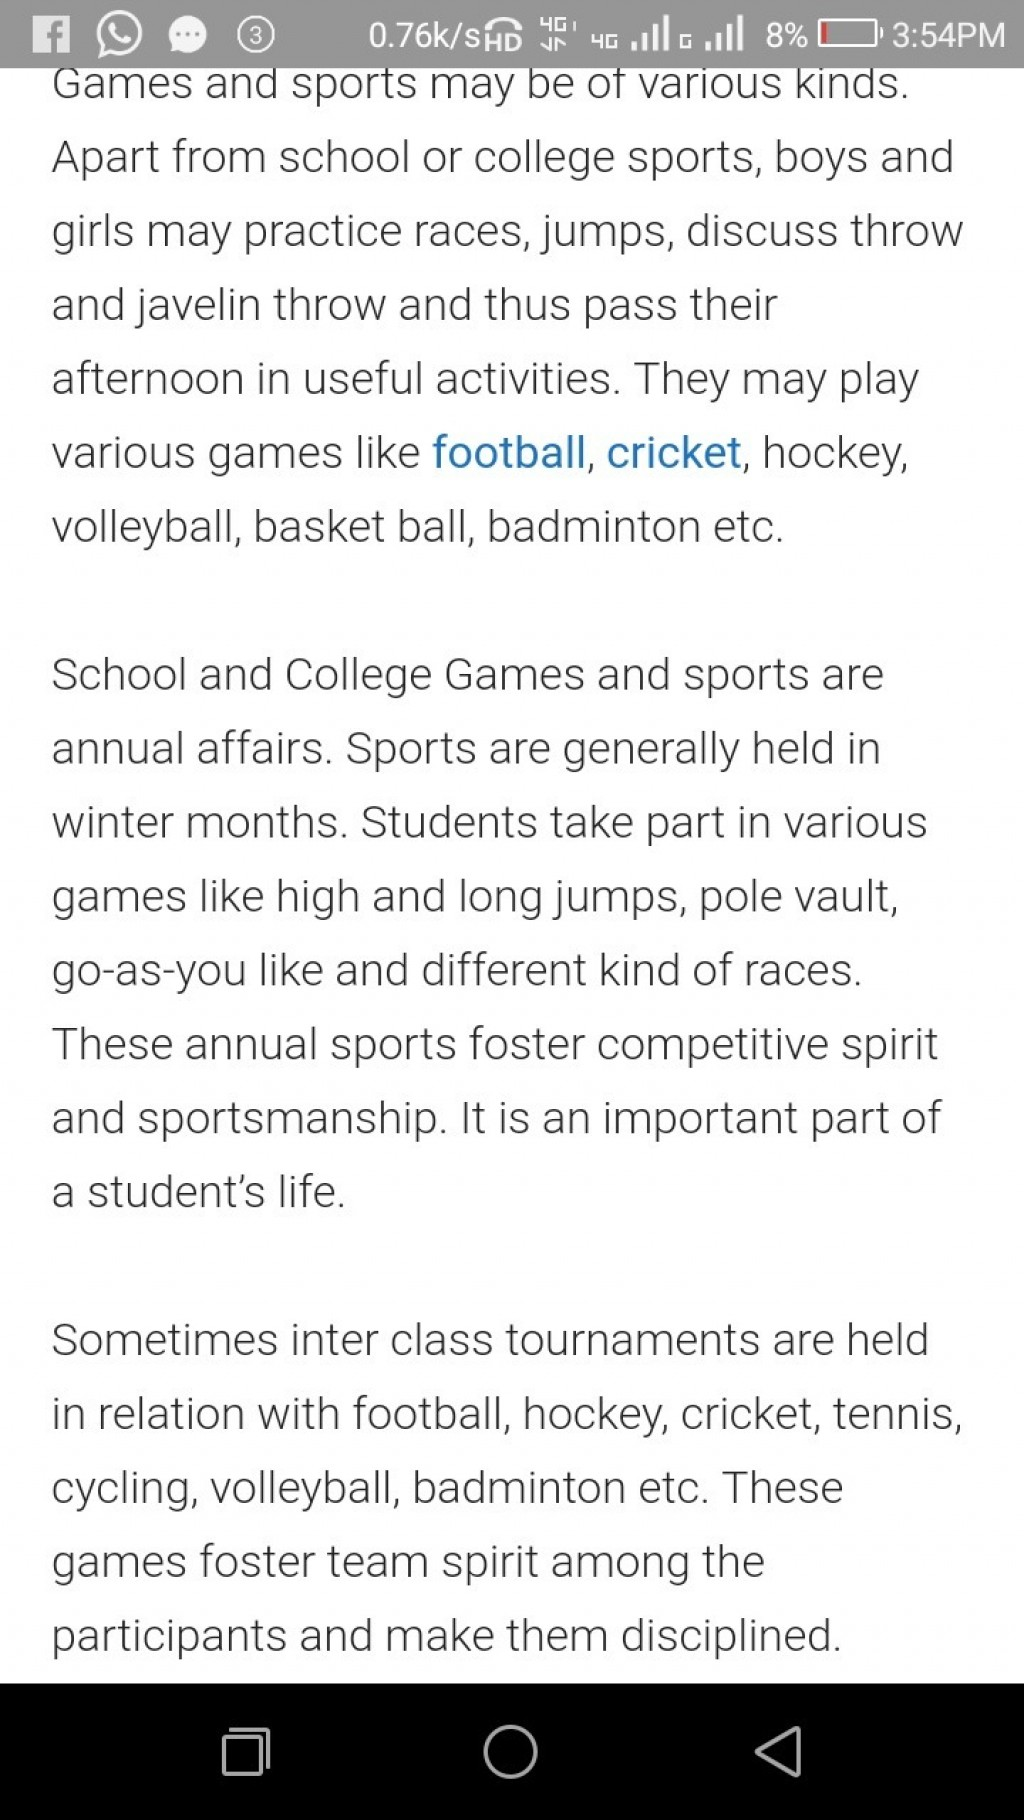 018 Essay On Importance Of Games And Sports In Words Hindi School Spirit Remarkable Argumentative Examples Related Topics Large